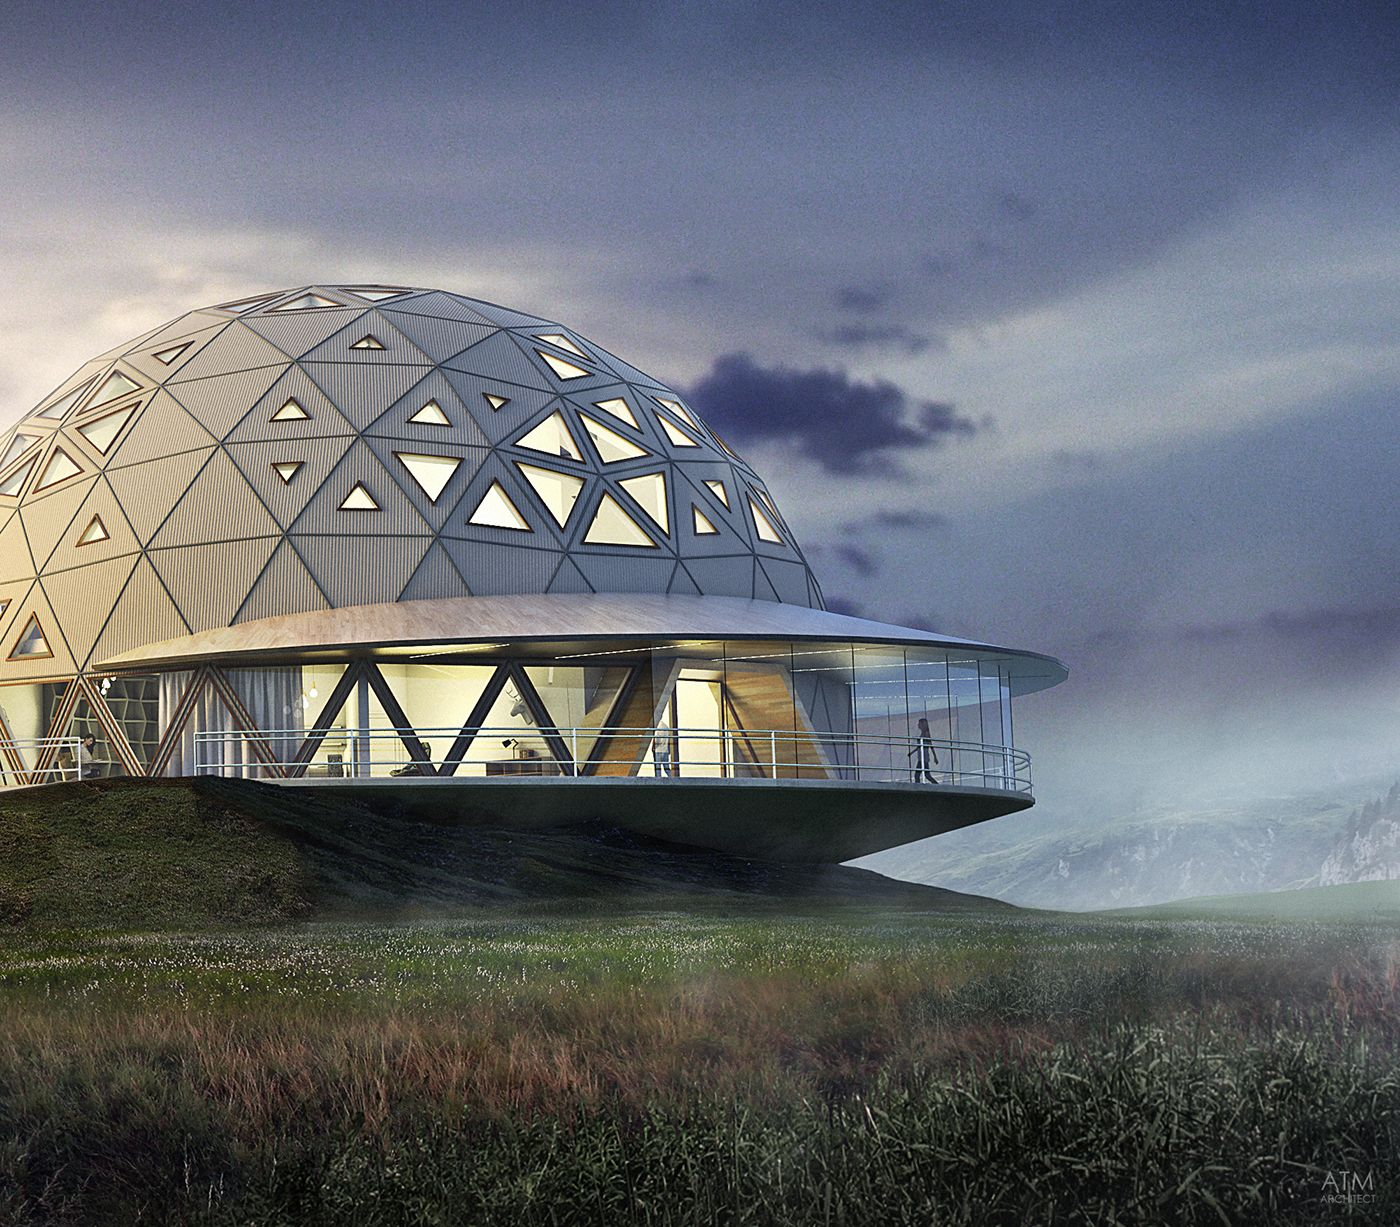 Project Gridless Geodesic Homes: Dome House, Geodesic Dome Homes